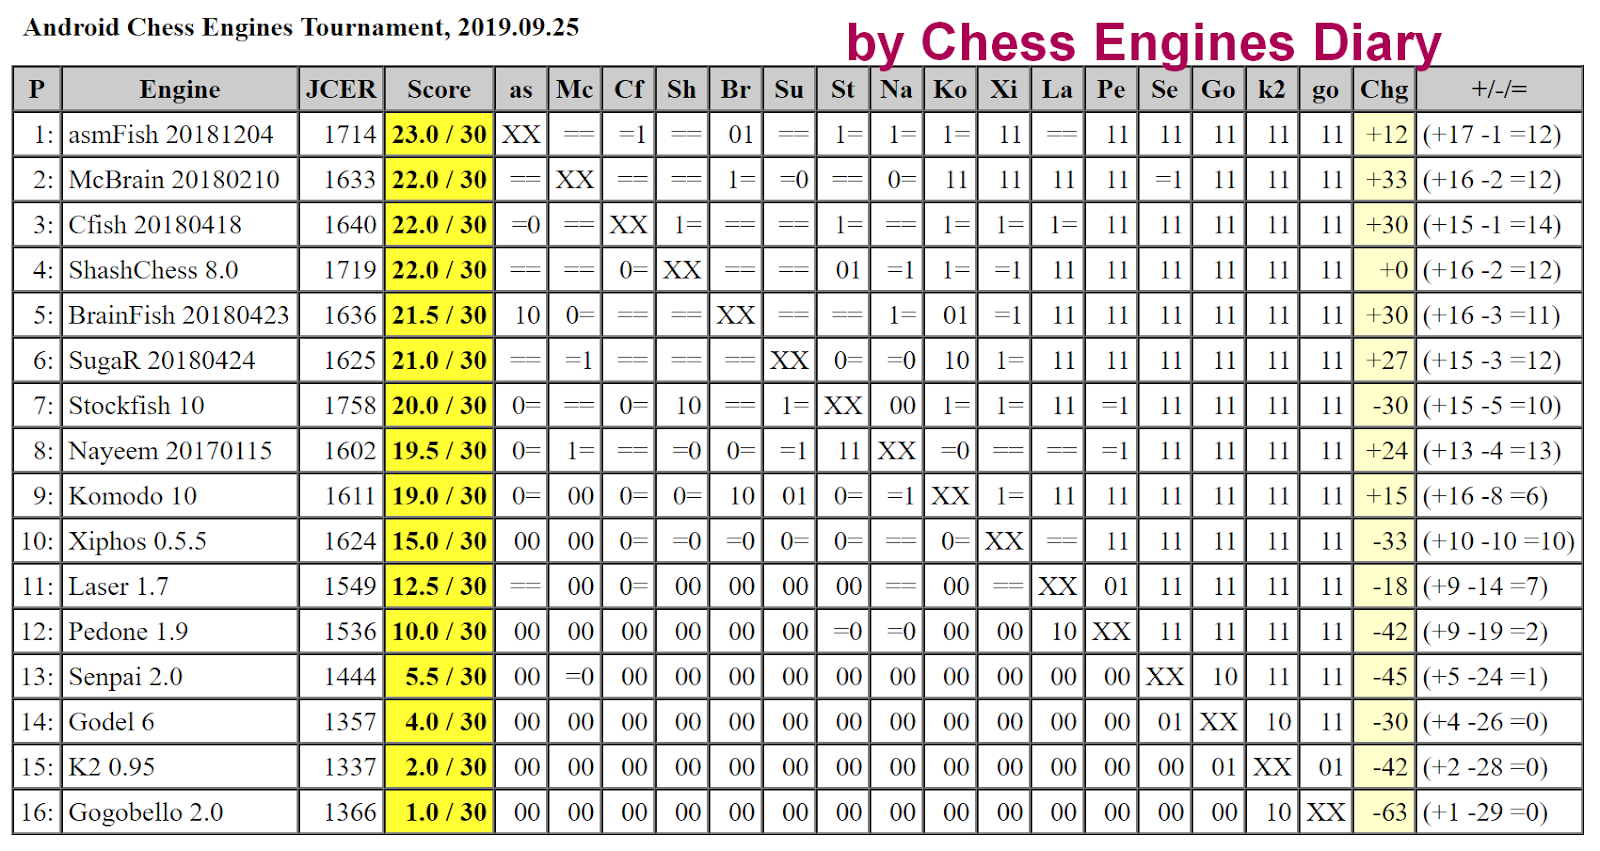 JCER chess engines for Android 25.09.2019.AndroidChessEngines%2BTourn.html